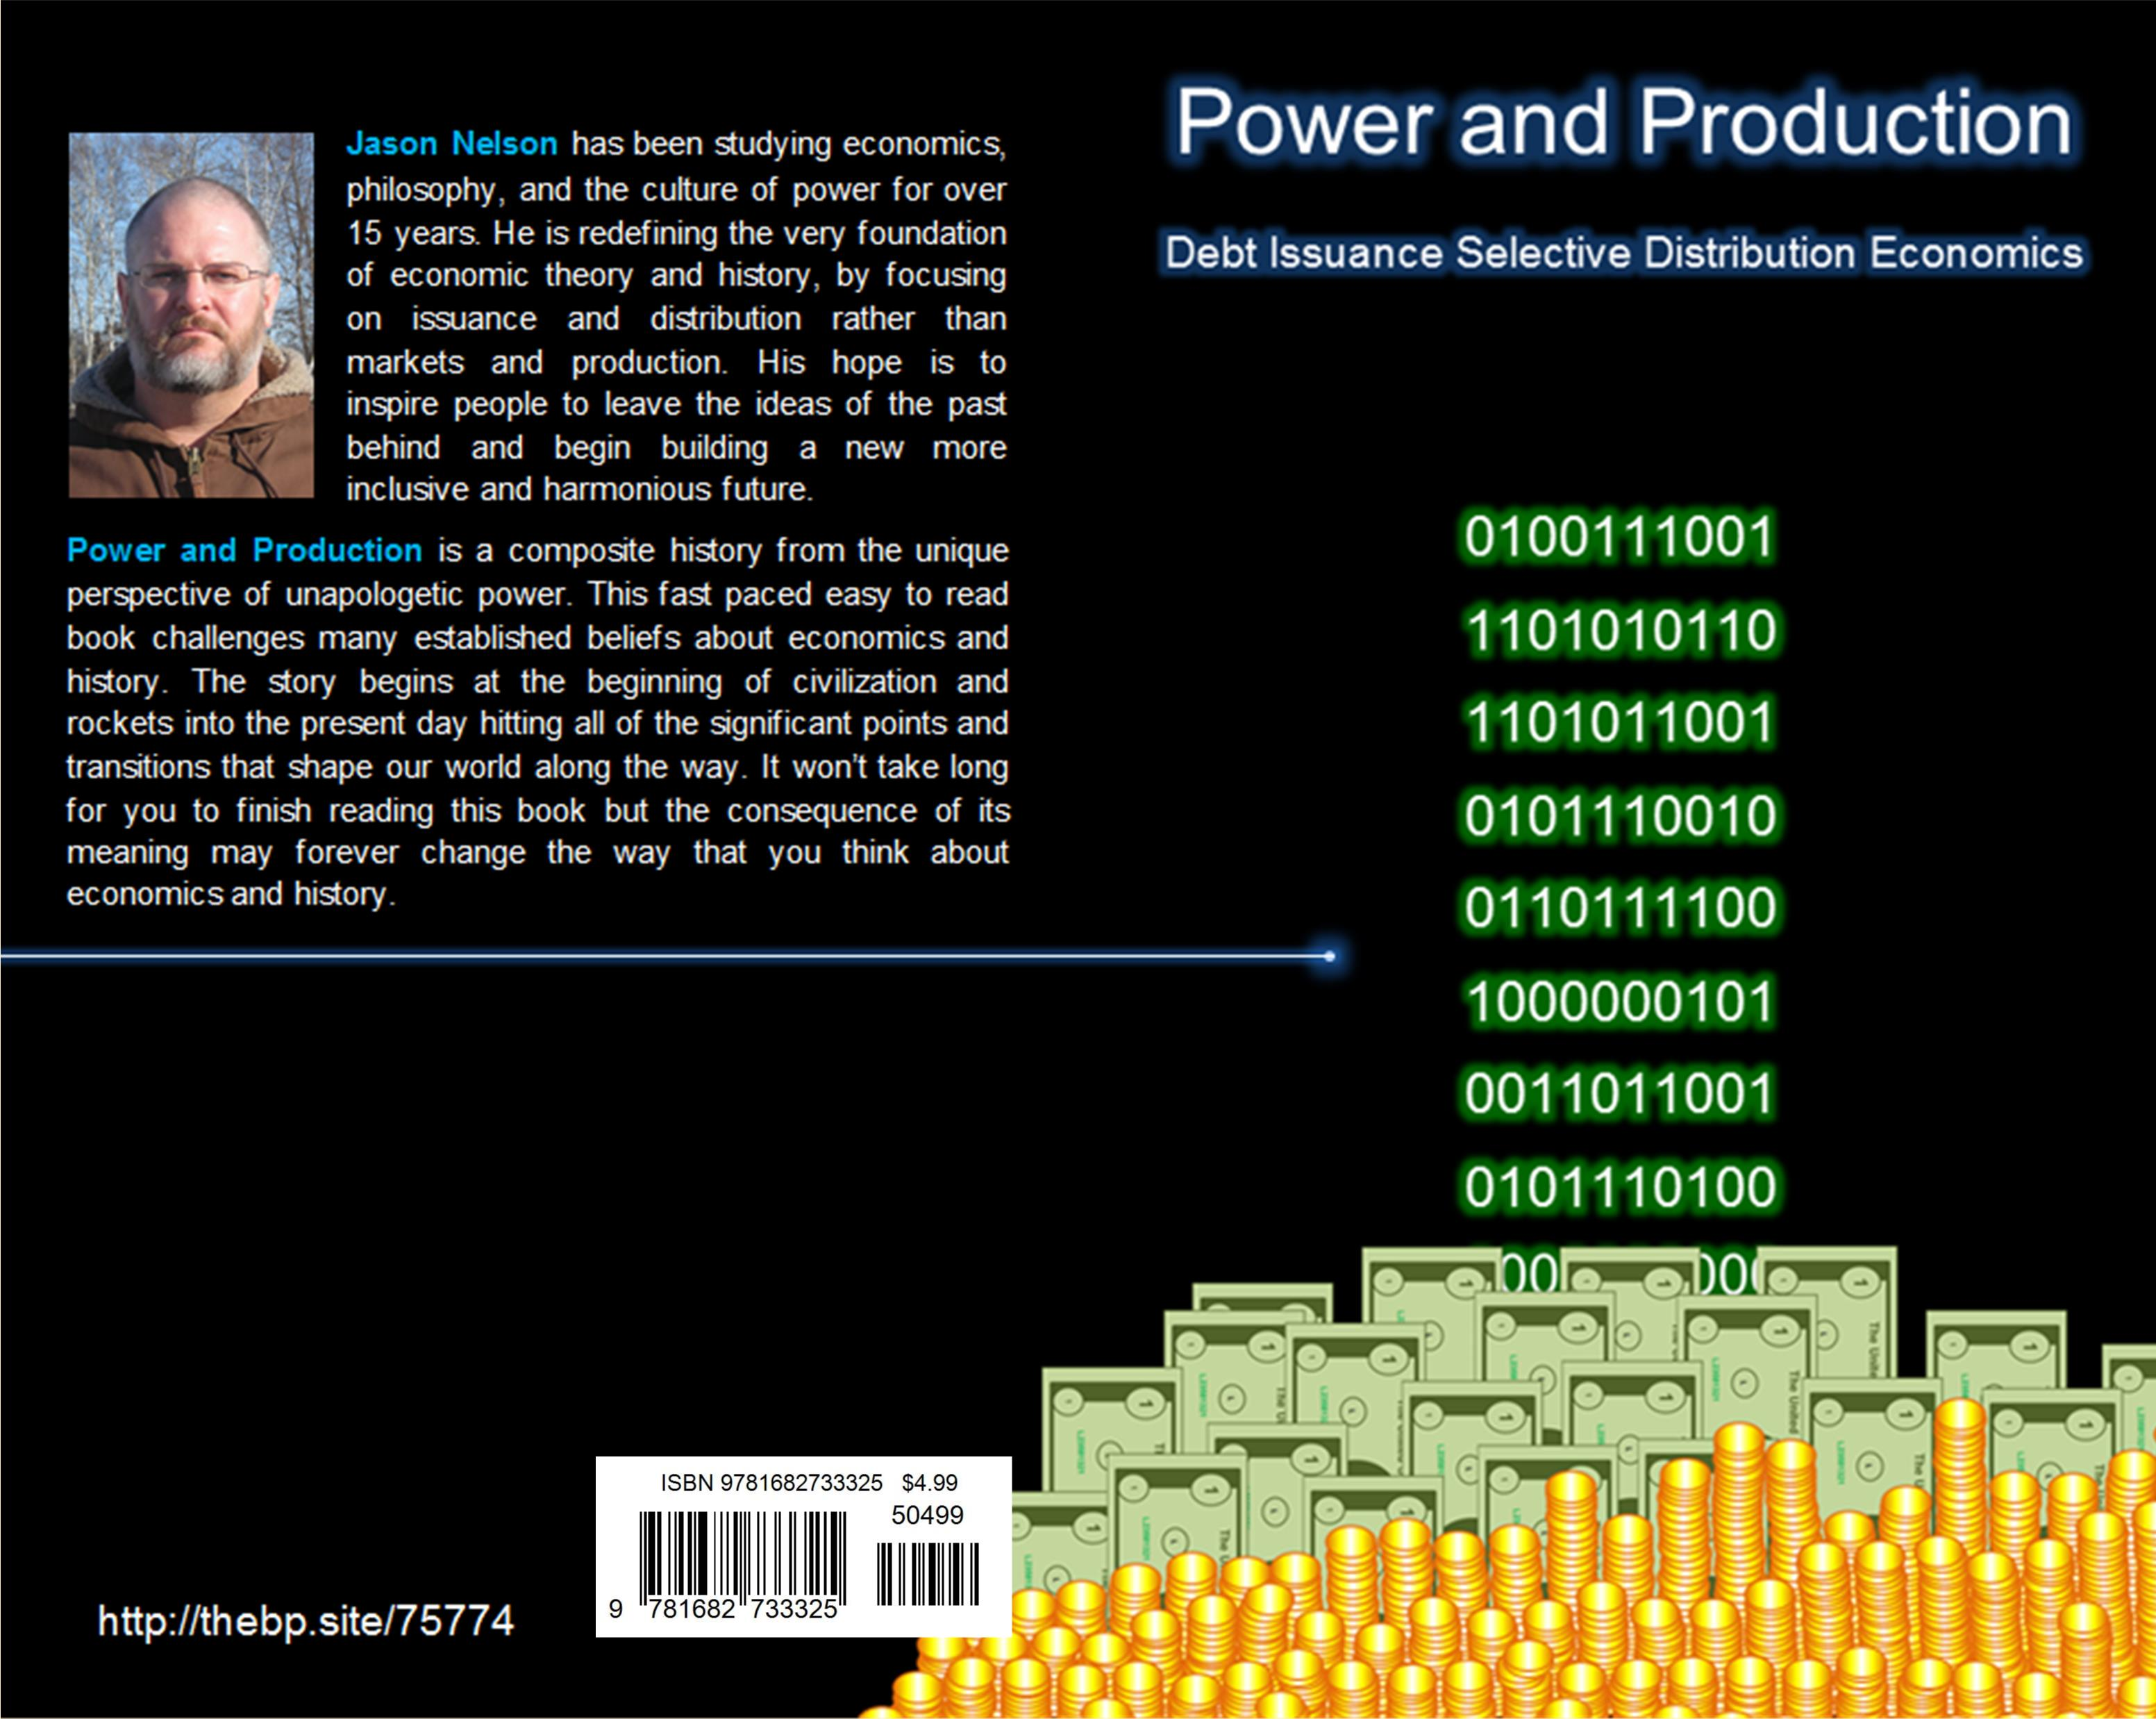 Power and Production cover image